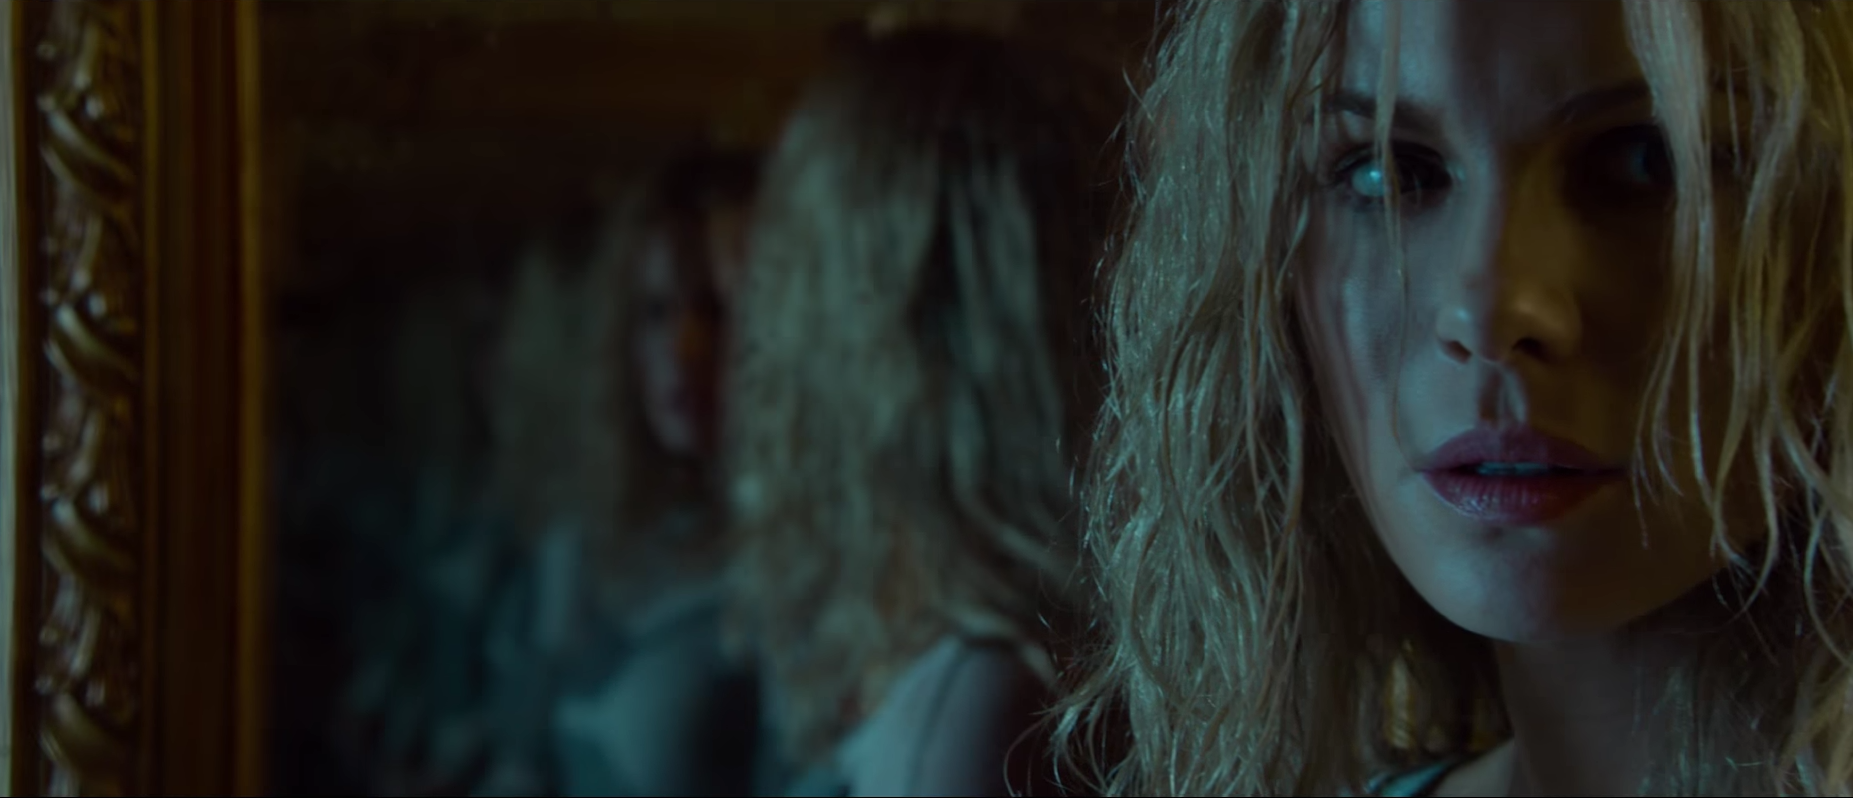 Kate Beckinsale gives a convincingly frightened performance in 'The Disappointments Room' trailer